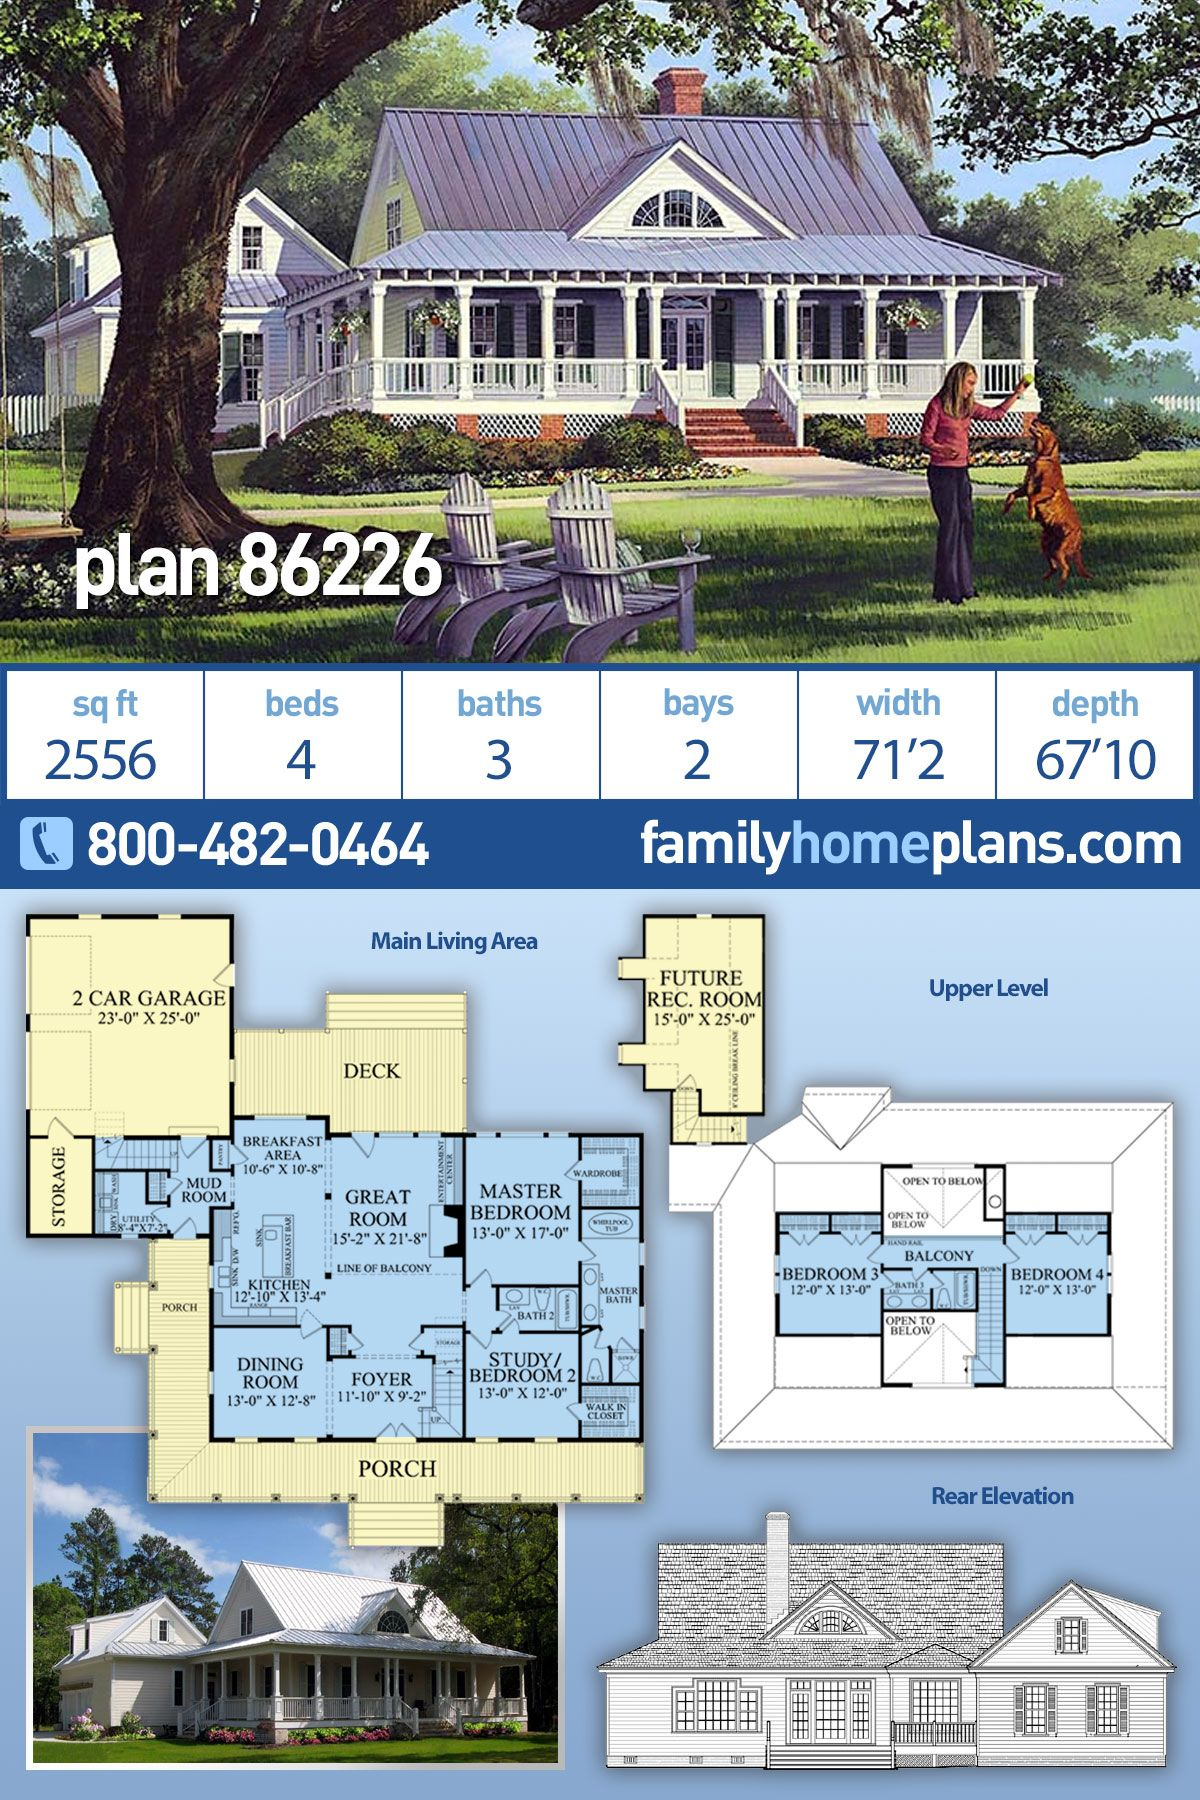 Photo of Plan 86226: Southern Style Country Farmhouse with 2500+ sq. ft., 4 Bedrooms, 3 Bathrooms Wrap Porch